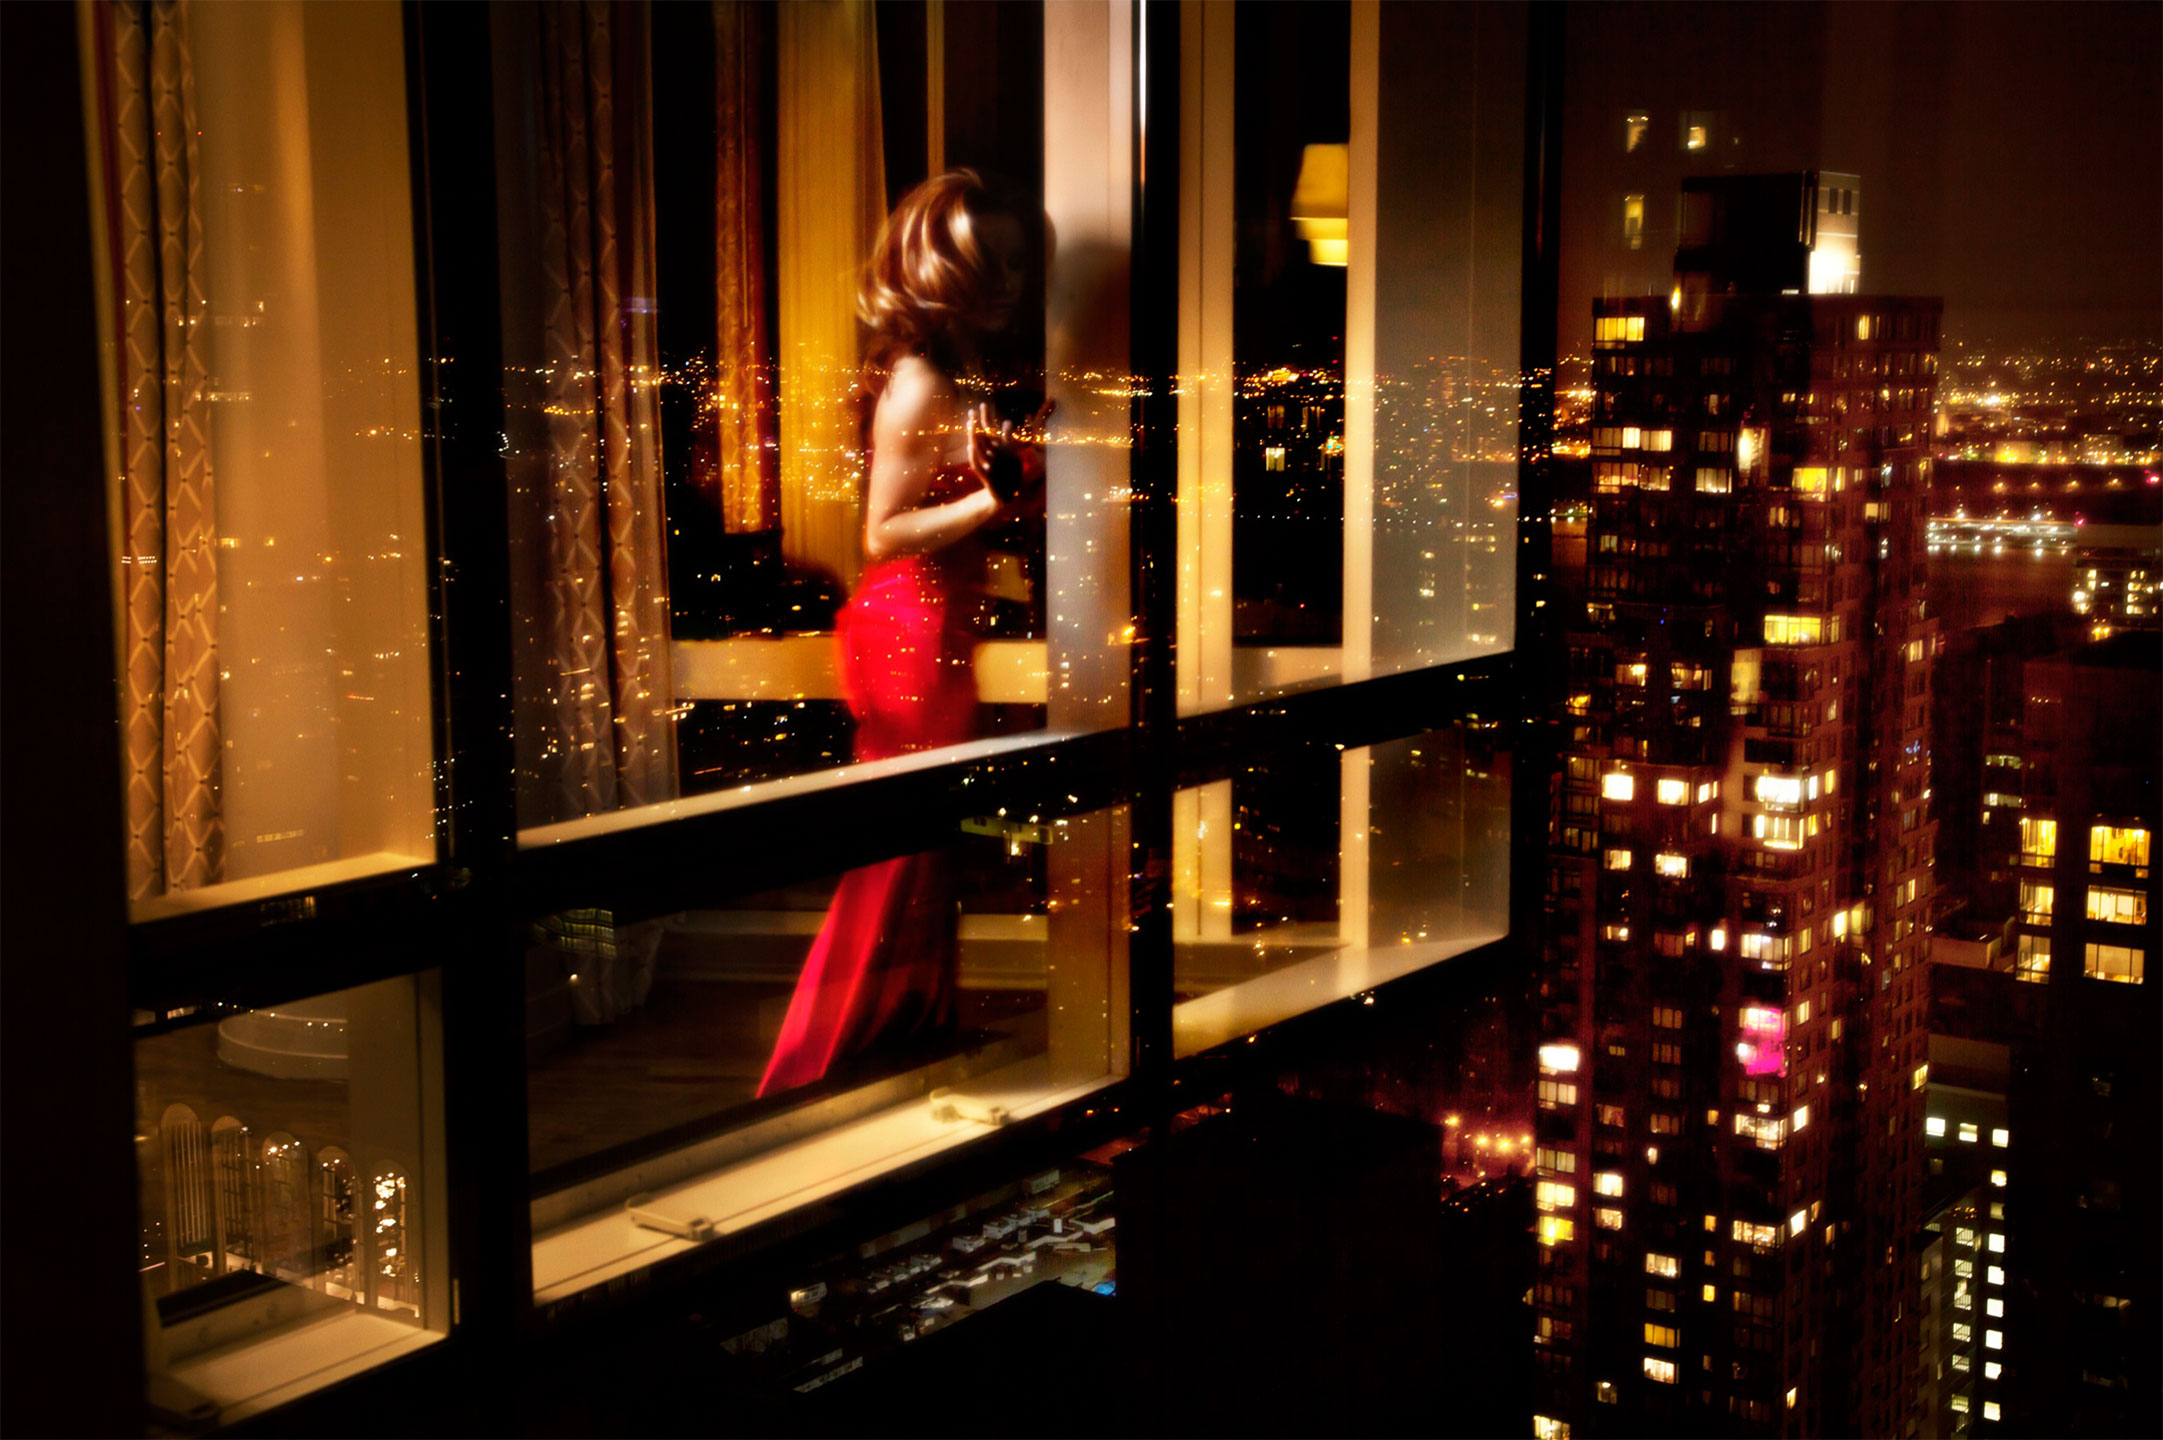 AG_Exhibition_DavidDrebin_11